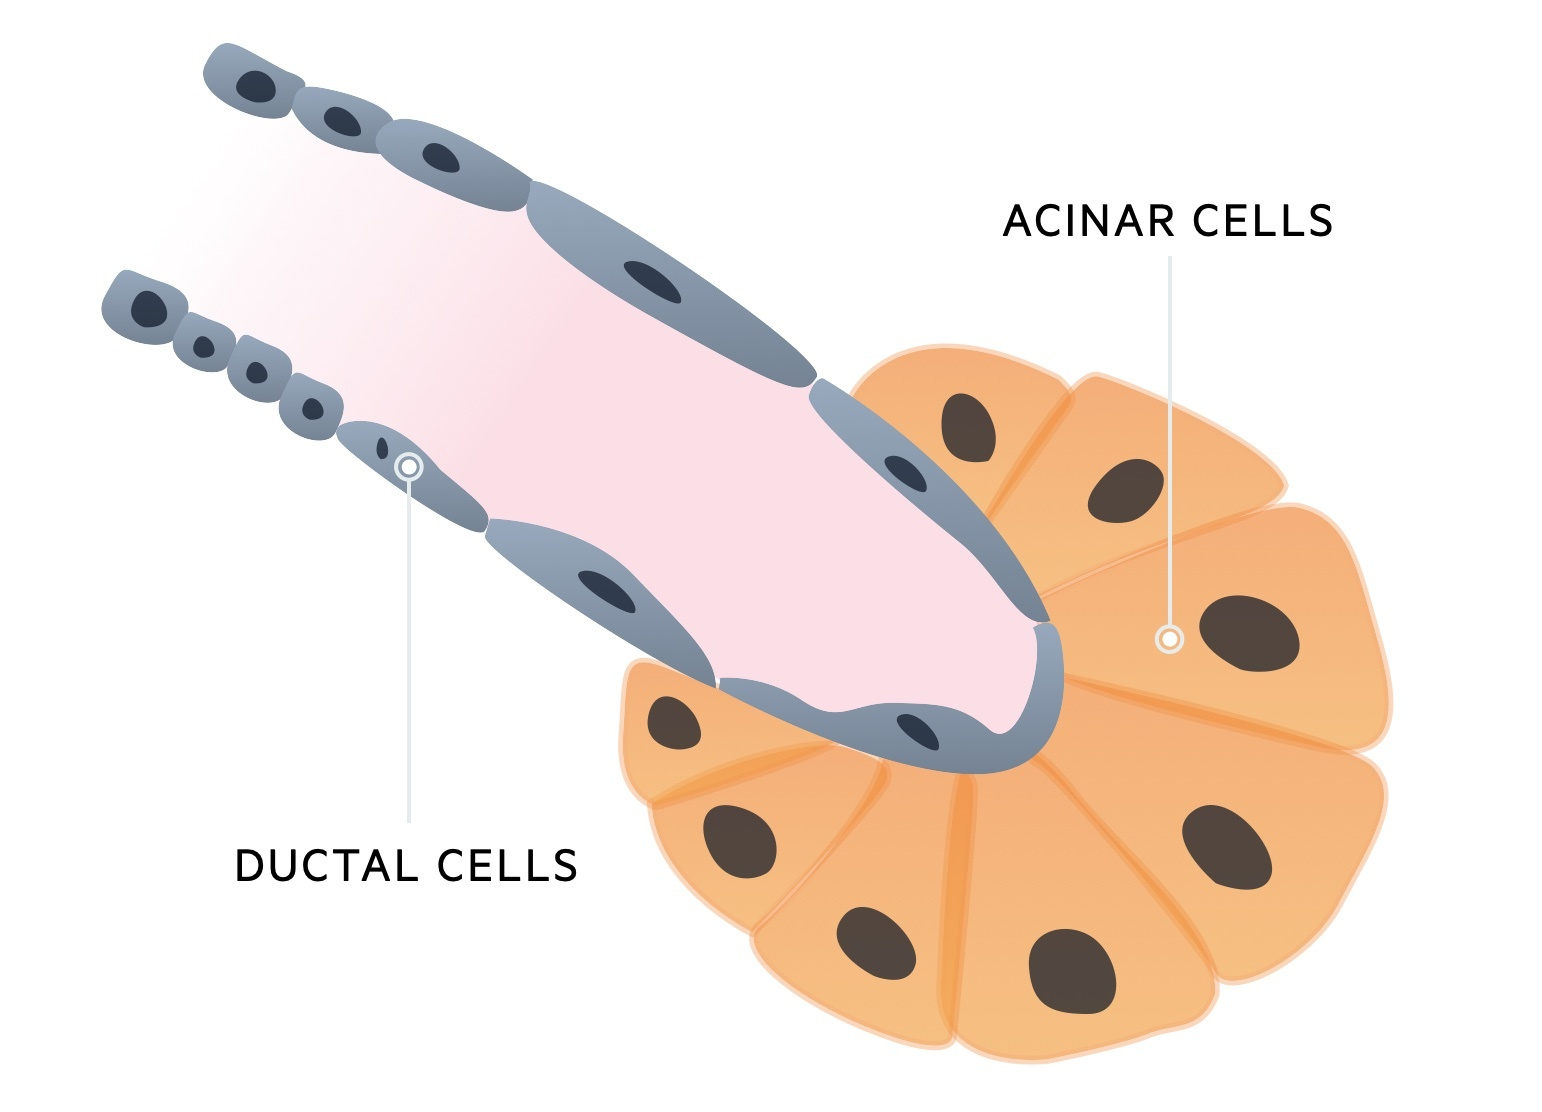 Ductal and acinar cells